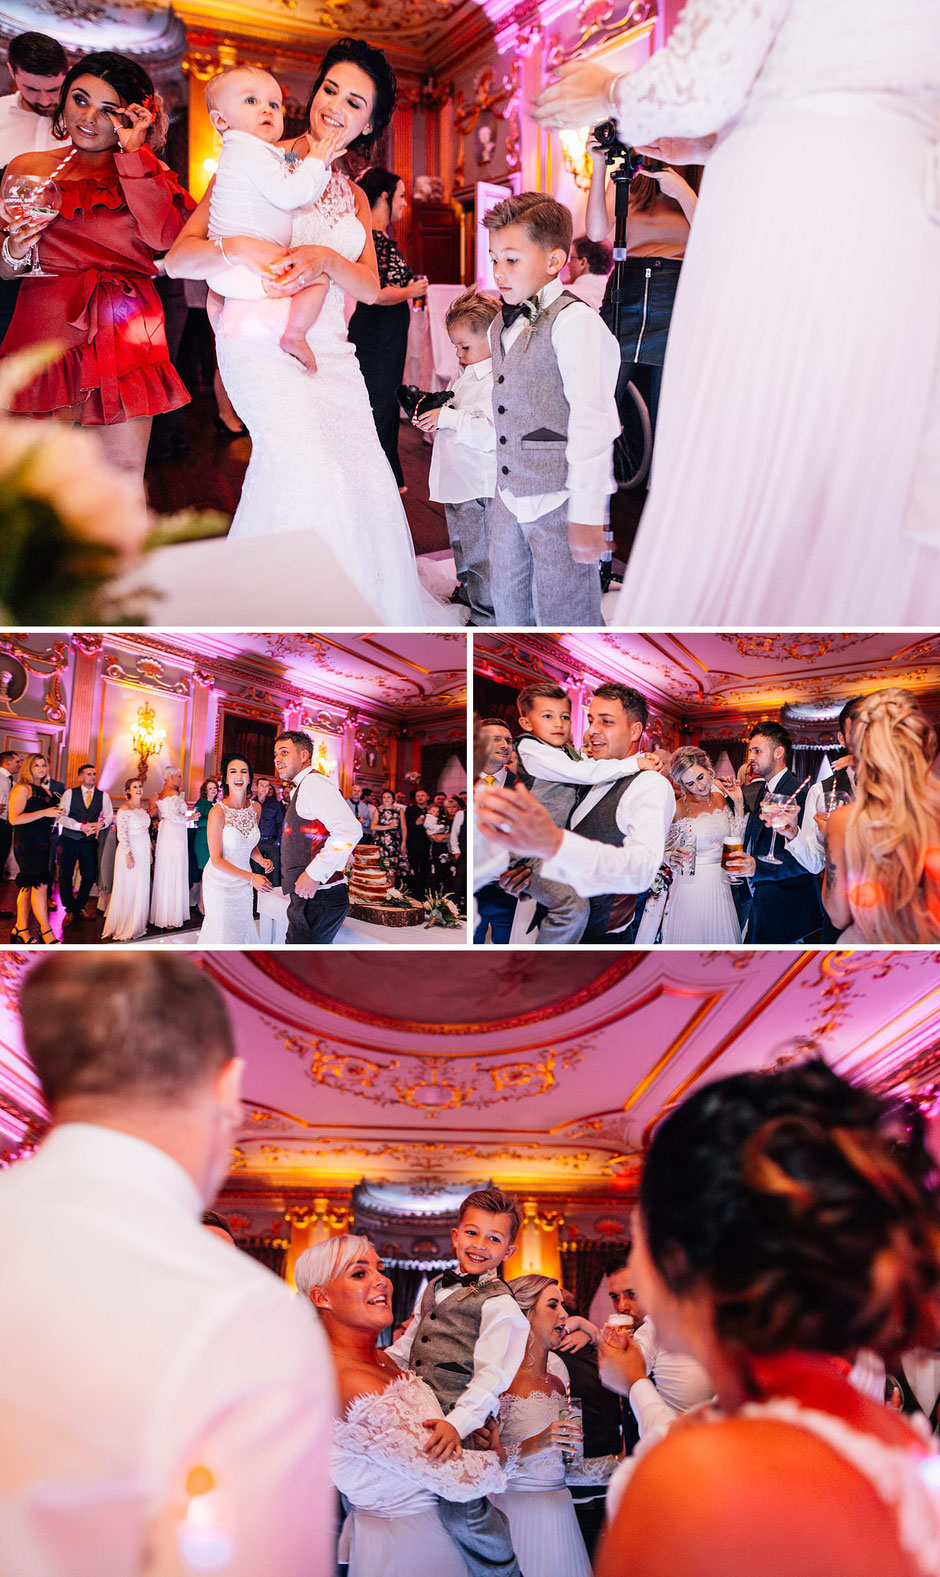 colourful photographs of a wedding reception at Knowsley hall